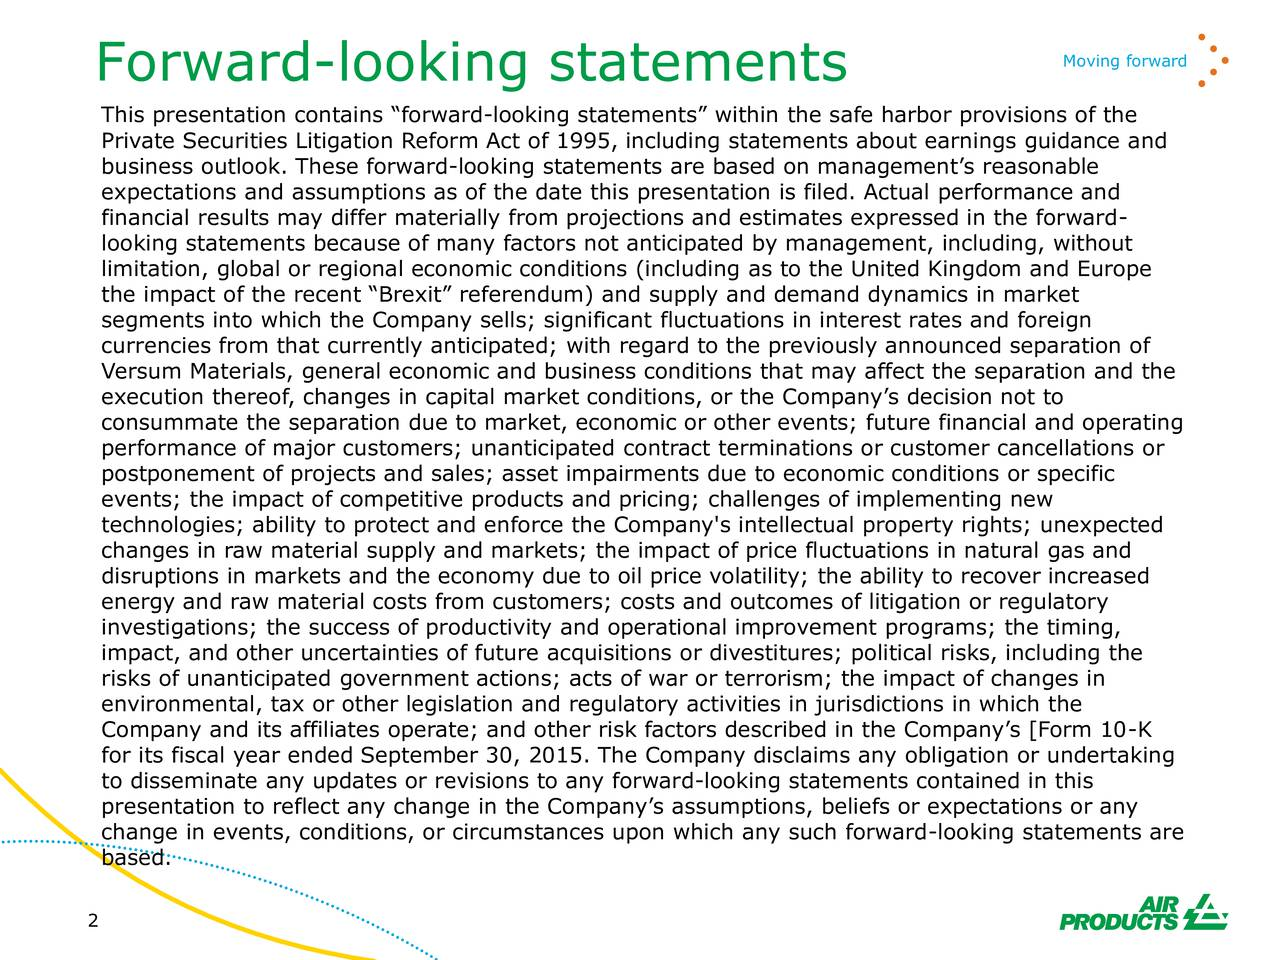 Forward-looking statements This presentation contains forward-looking statements within the safe harbor provisions of the Private Securities Litigation Reform Act of 1995, including statements about earnings guidance and business outlook. These forward-looking statements are based on managements reasonable expectations and assumptions as of the date this presentation is filed. Actual performance and financial results may differ materially from projections and estimates expressed in the forward- looking statements because of many factors not anticipated by management, including, without limitation, global or regional economic conditions (including as to the United Kingdom and Europe the impact of the recent Brexit referendum) and supply and demand dynamics in market segments into which the Company sells; significant fluctuations in interest rates and foreign currencies from that currently anticipated; with regard to the previously announced separation of Versum Materials, general economic and business conditions that may affect the separation and the execution thereof, changes in capital market conditions, or the Companys decision not to consummate the separation due to market, economic or other events; future financial and operating performance of major customers; unanticipated contract terminations or customer cancellations or postponement of projects and sales; asset impairments due to economic conditions or specific events; the impact of competitive products and pricing; challenges of implementing new technologies; ability to protect and enforce the Company's intellectual property rights; unexpected changes in raw material supply and markets; the impact of price fluctuations in natural gas and disruptions in markets and the economy due to oil price volatility; the ability to recover increased energy and raw material costs from customers; costs and outcomes of litigation or regulatory investigations; the success of productivity and operational improvement programs; the timing, impact, and other uncertainties of future acquisitions or divestitures; political risks, including the risks of unanticipated government actions; acts of war or terrorism; the impact of changes in environmental, tax or other legislation and regulatory activities in jurisdictions in which the Company and its affiliates operate; and other risk factors described in the Companys [Form 10-K for its fiscal year ended September 30, 2015. The Company disclaims any obligation or undertaking to disseminate any updates or revisions to any forward-looking statements contained in this presentation to reflect any change in the Companys assumptions, beliefs or expectations or any change in events, conditions, or circumstances upon which any such forward-looking statements are based. 2